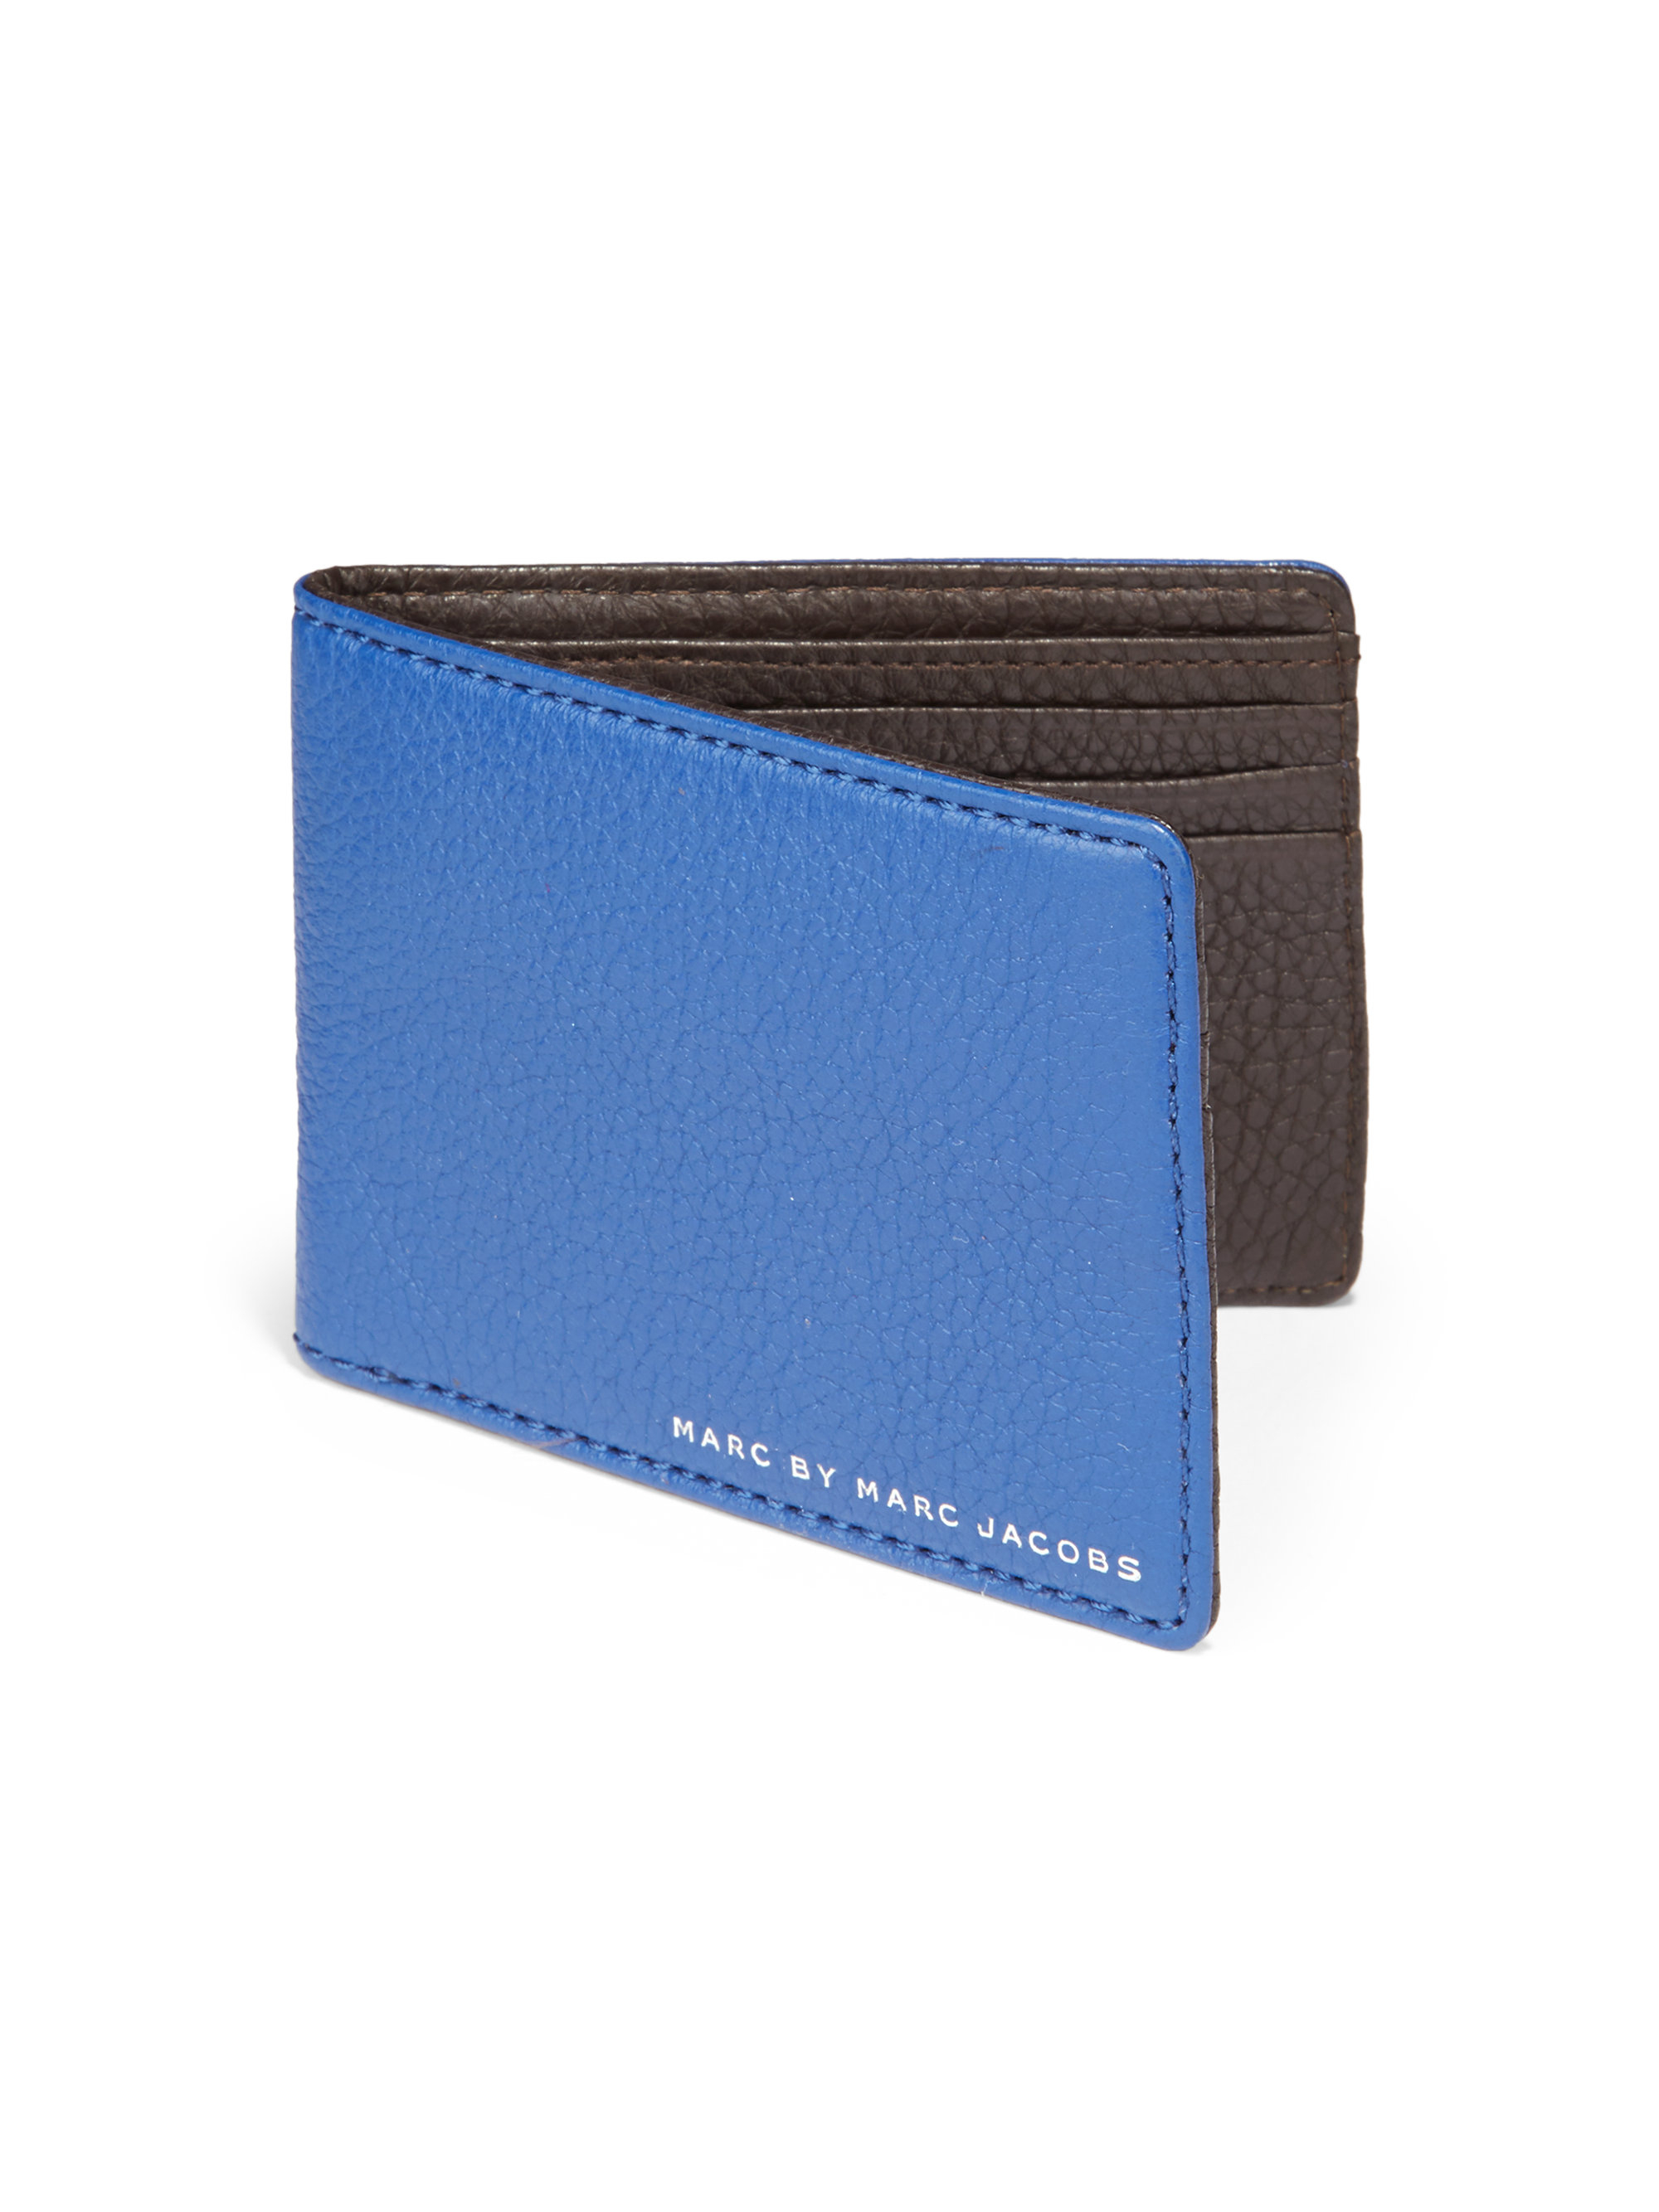 Marc By Marc Jacobs Martin Leather Wallet In Blue For Men